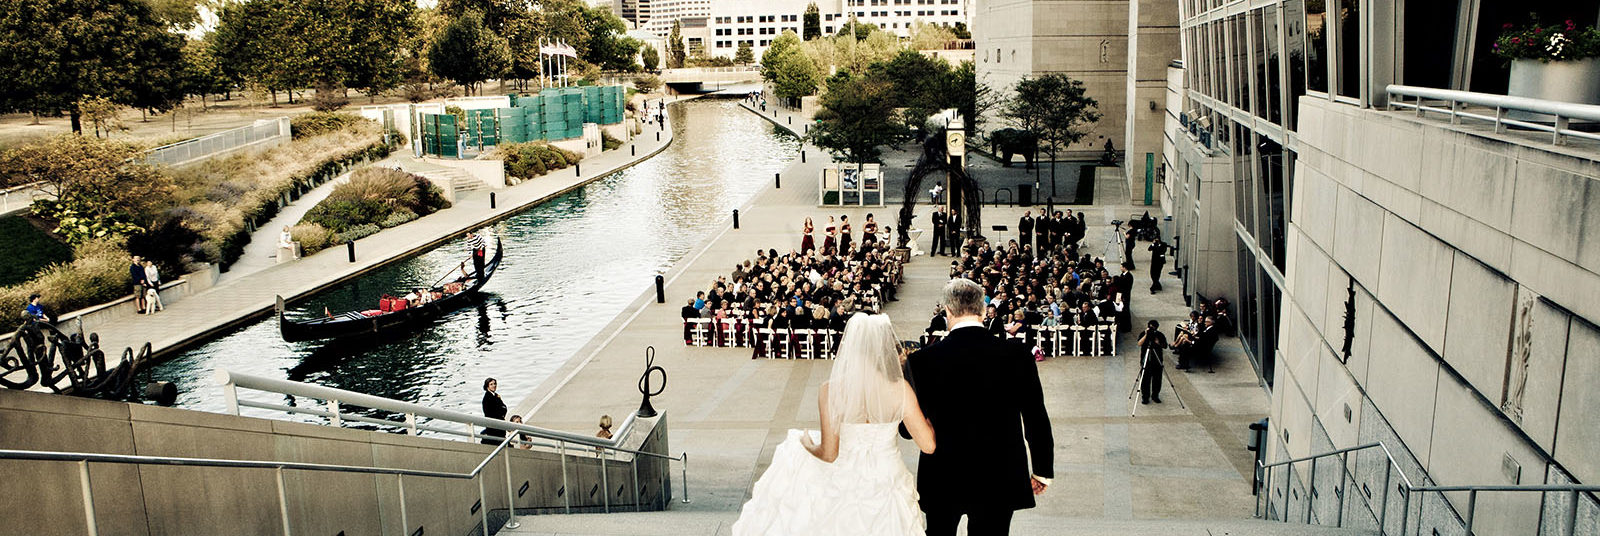 Wedding Ceremony on the Canal